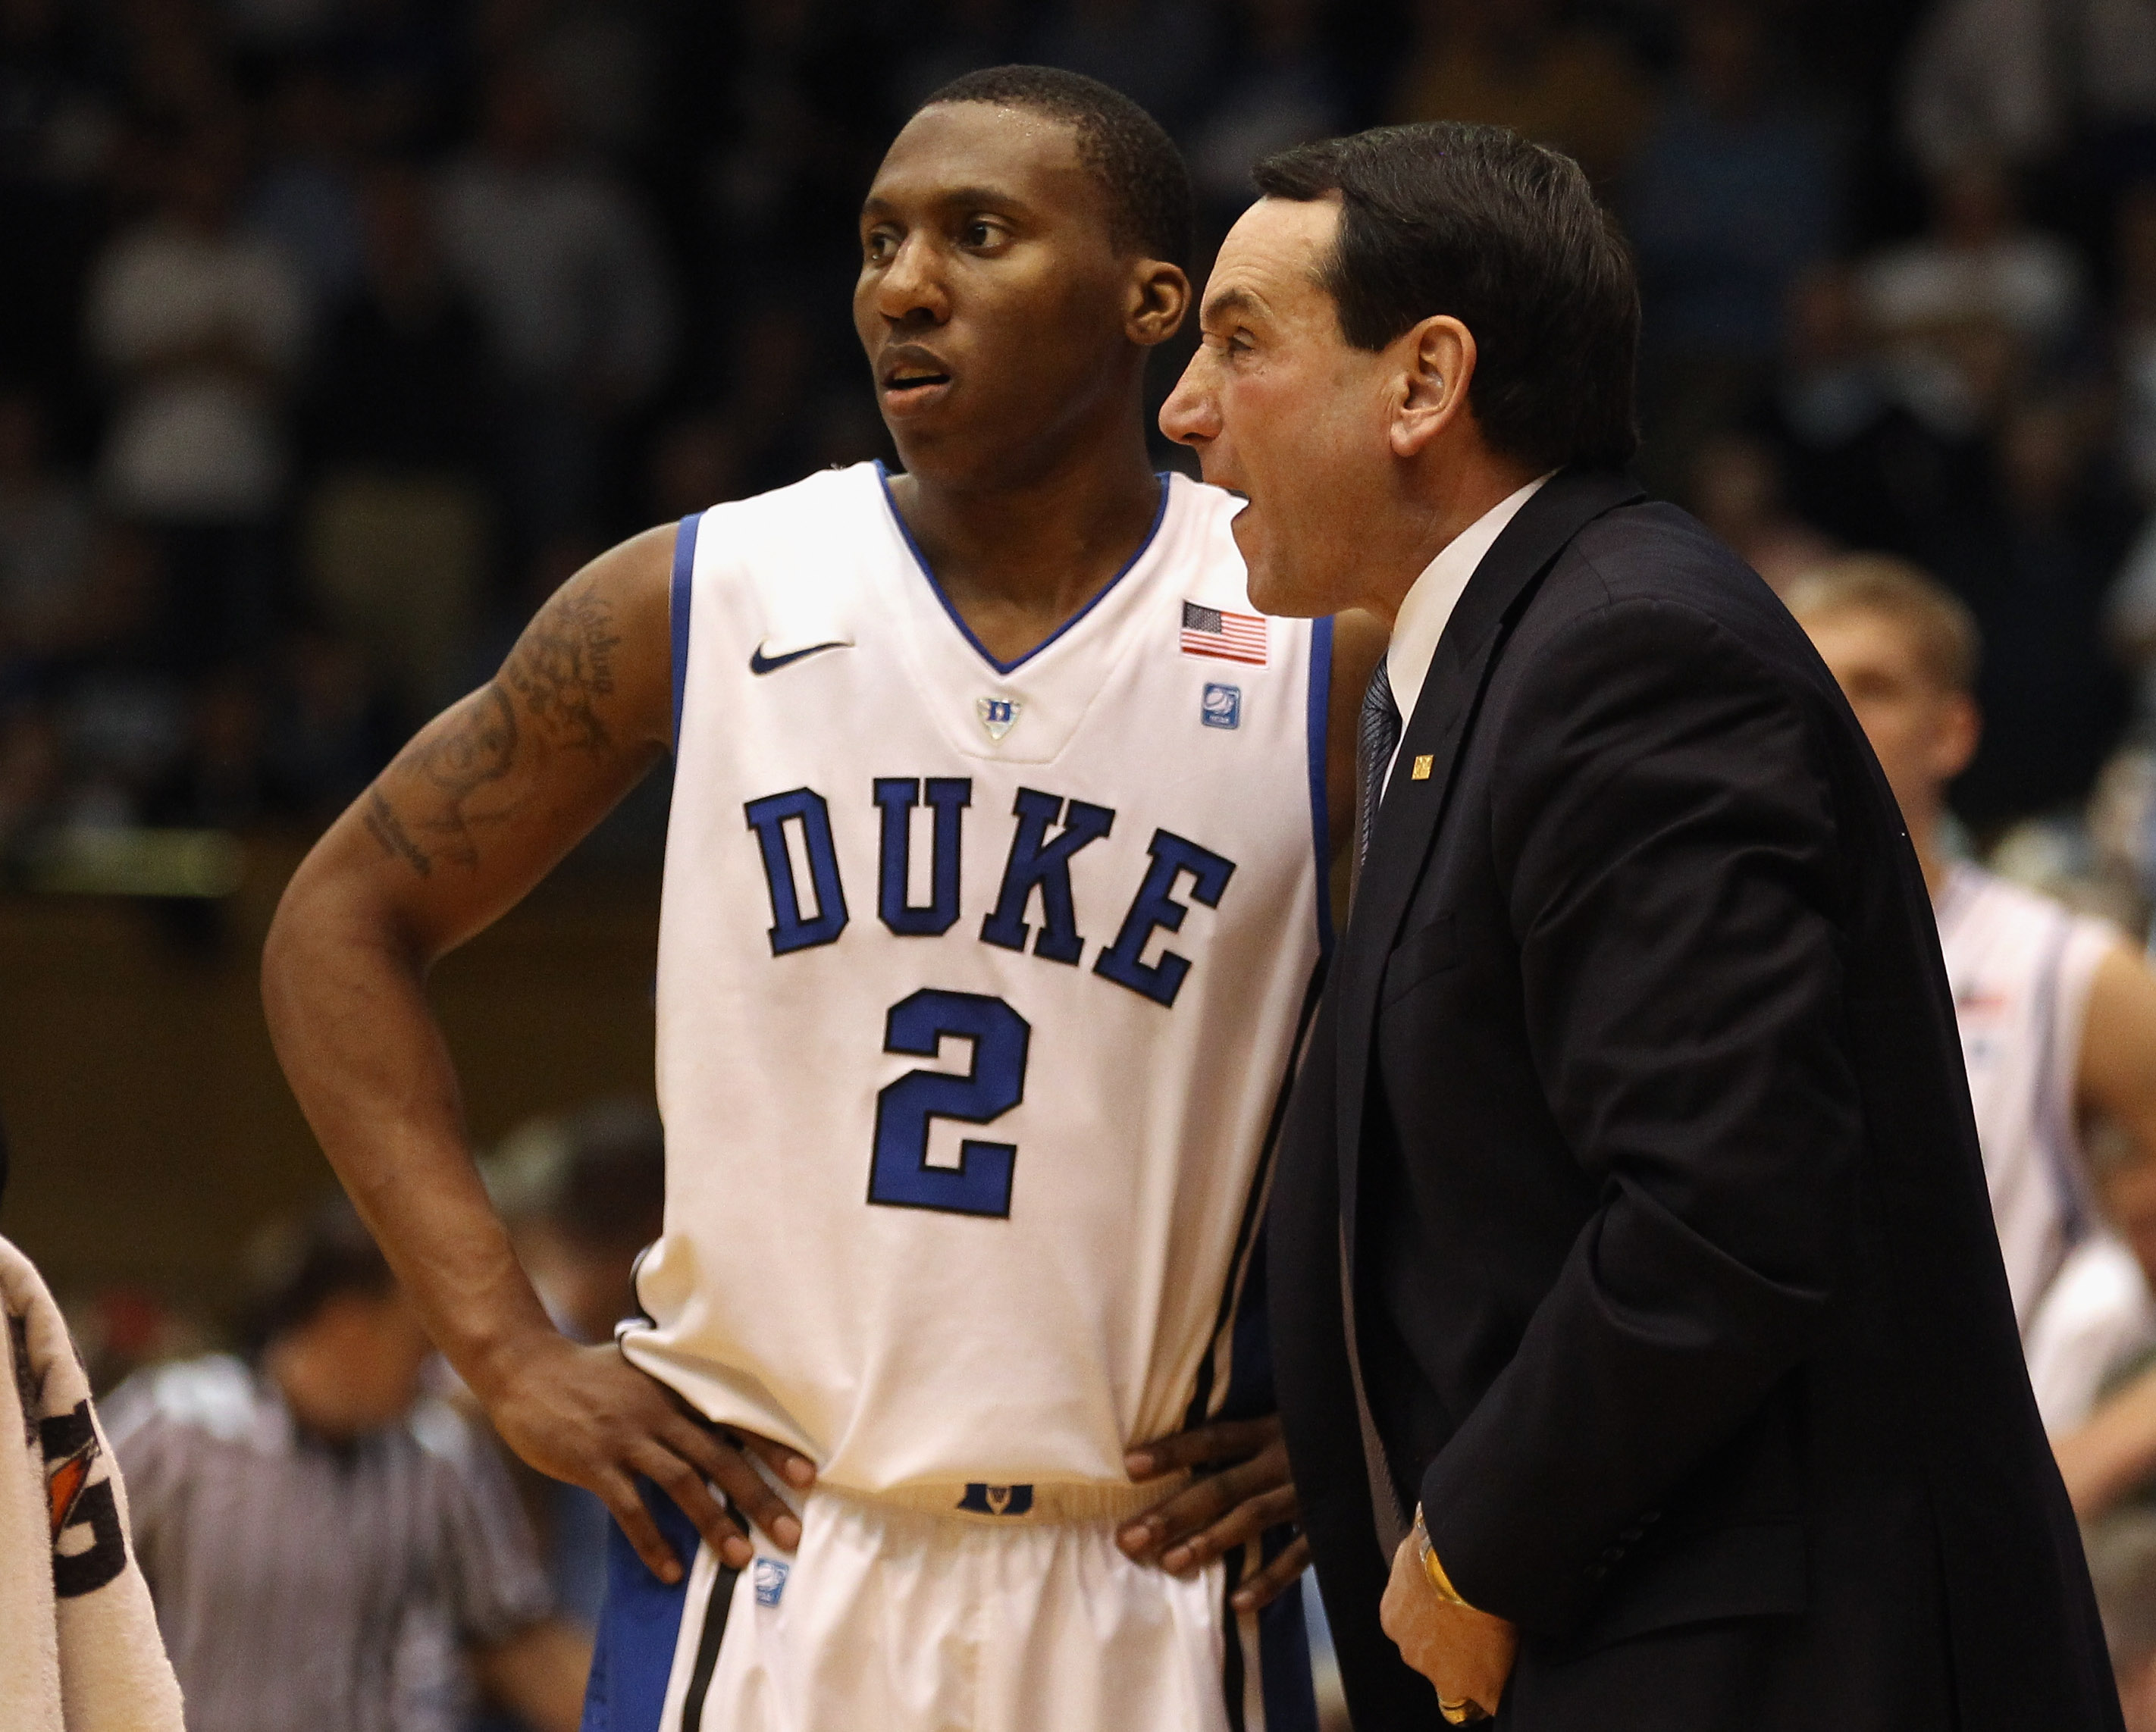 DURHAM, NC - FEBRUARY 09:  Head coach Mike Krzyzewski and Nolan Smith #2 of the Duke Blue Devils against the North Carolina Tar Heels during their game at Cameron Indoor Stadium on February 9, 2011 in Durham, North Carolina.  (Photo by Streeter Lecka/Gett